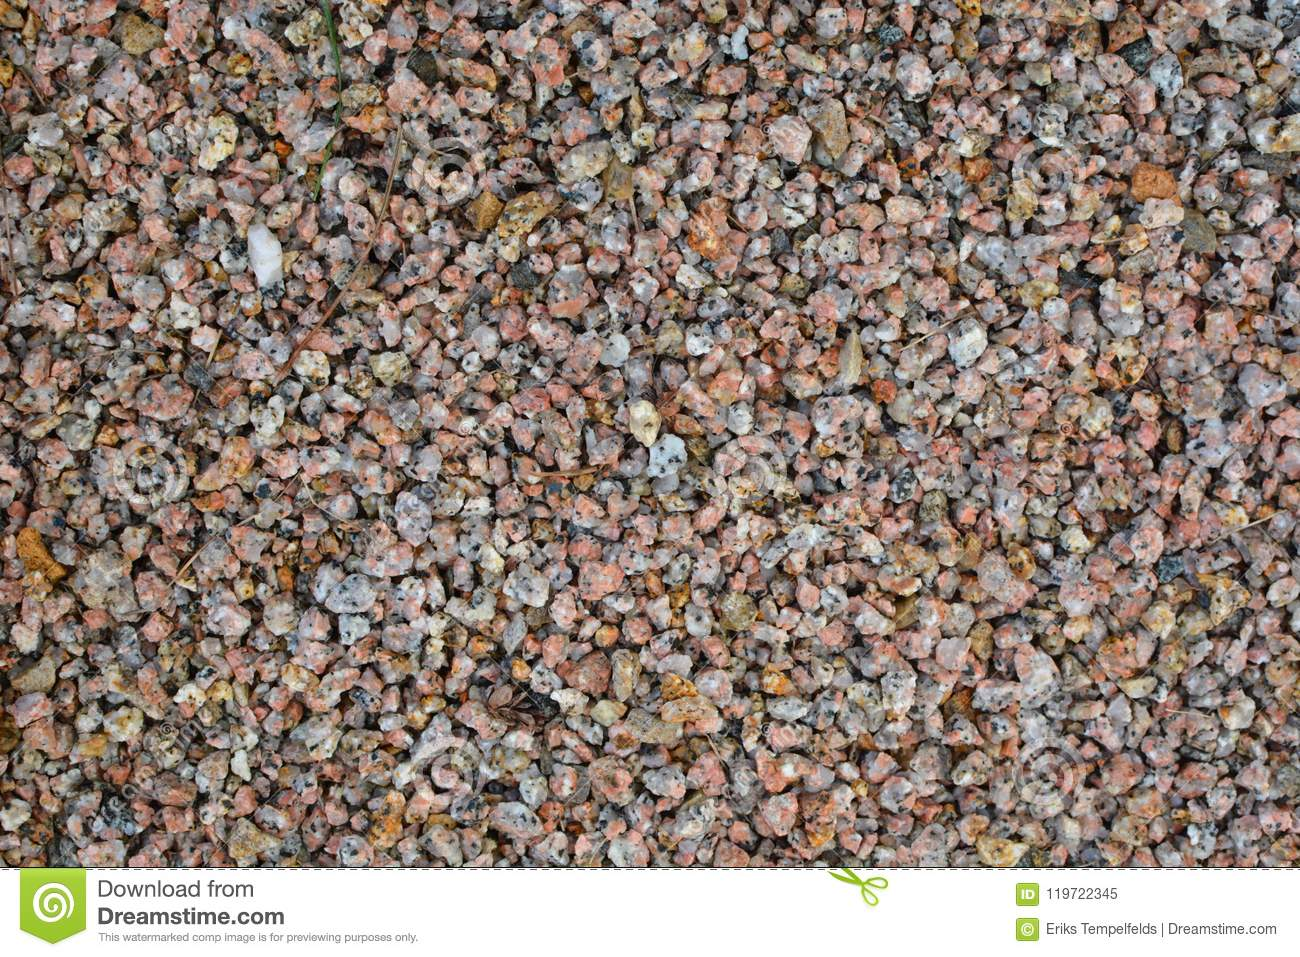 Download Pebbles And Small Stones For Garden Decoration Stock Image   Image  Of Decoration, Concept